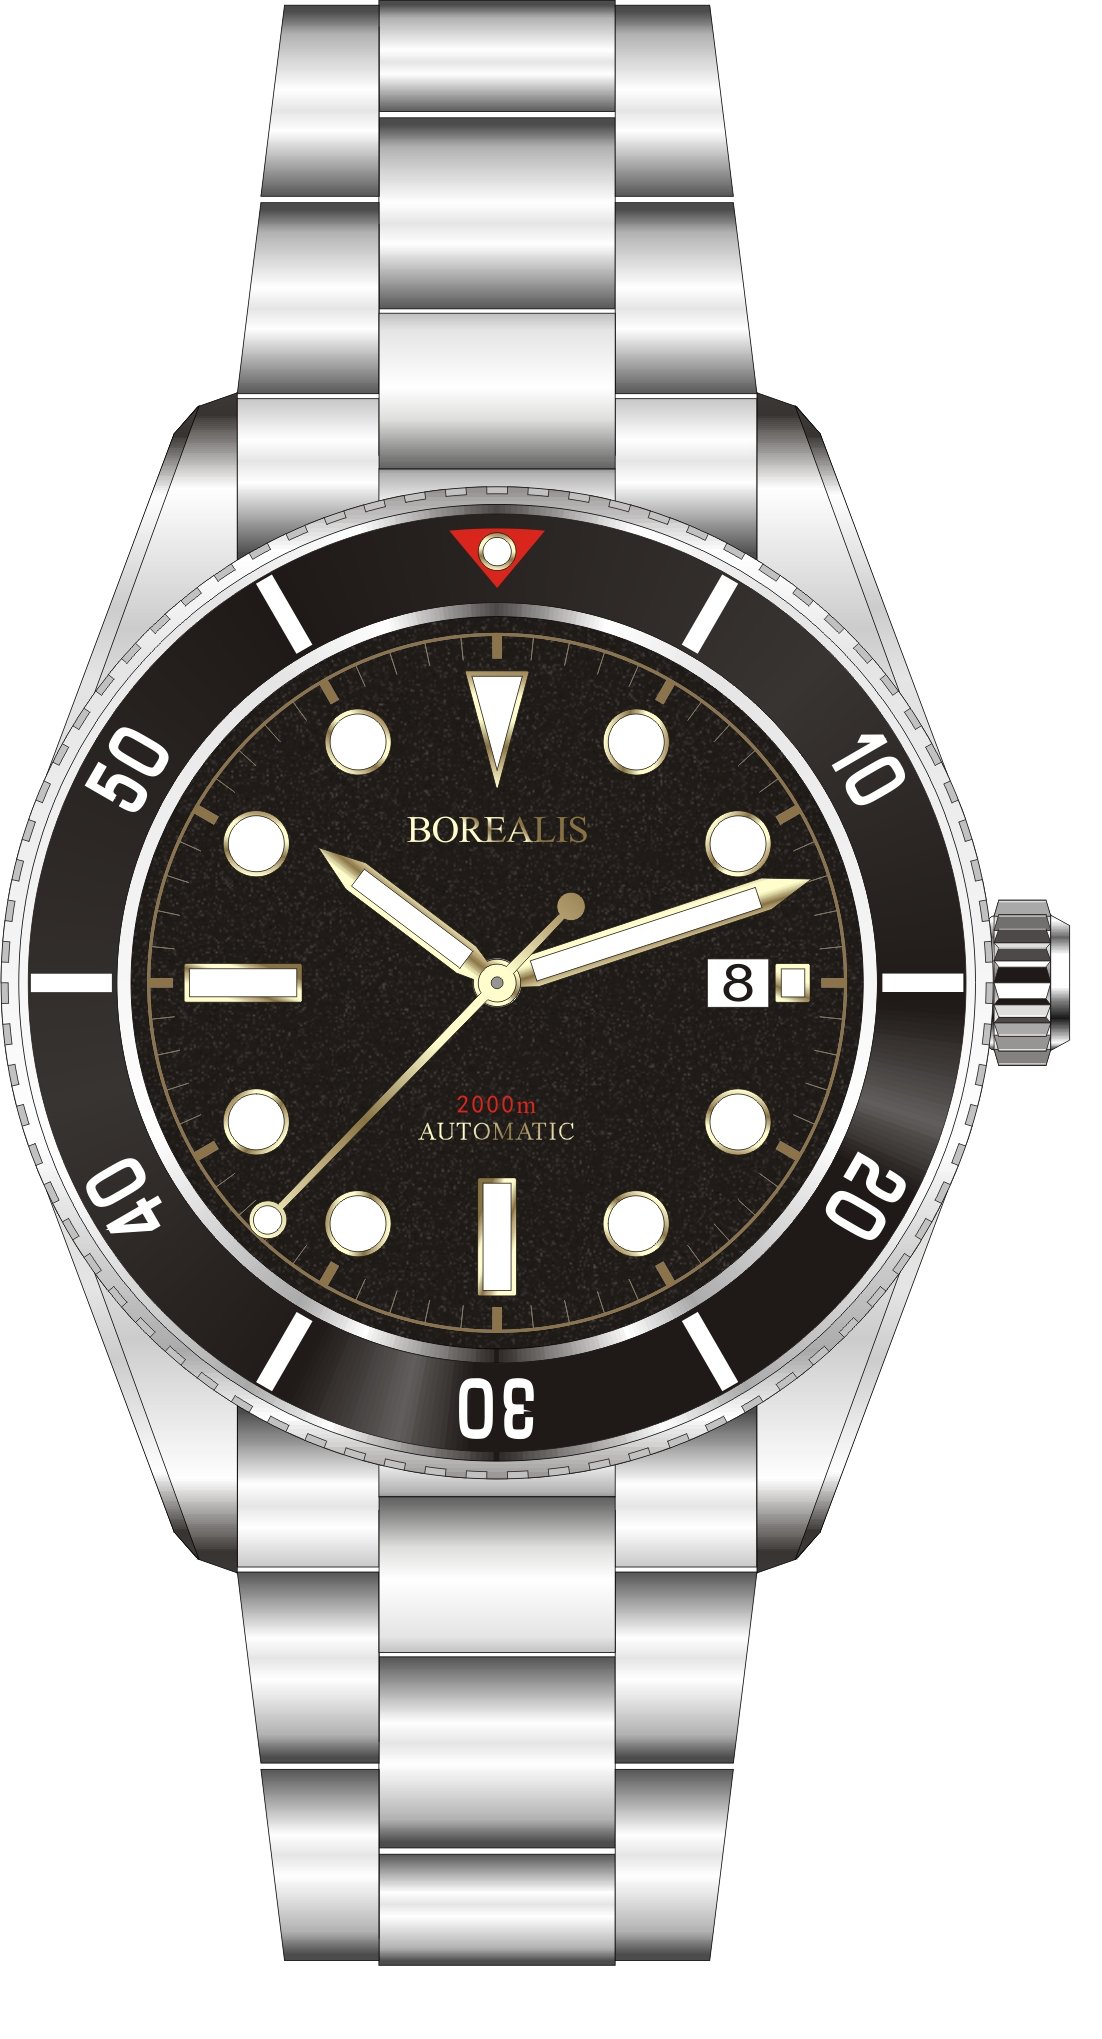 Pre-Order Borealis Bull Shark Automatic Diver Watch Date Miyota 9015 Ceramic Black Bezel Black Dial BBSBBBDD